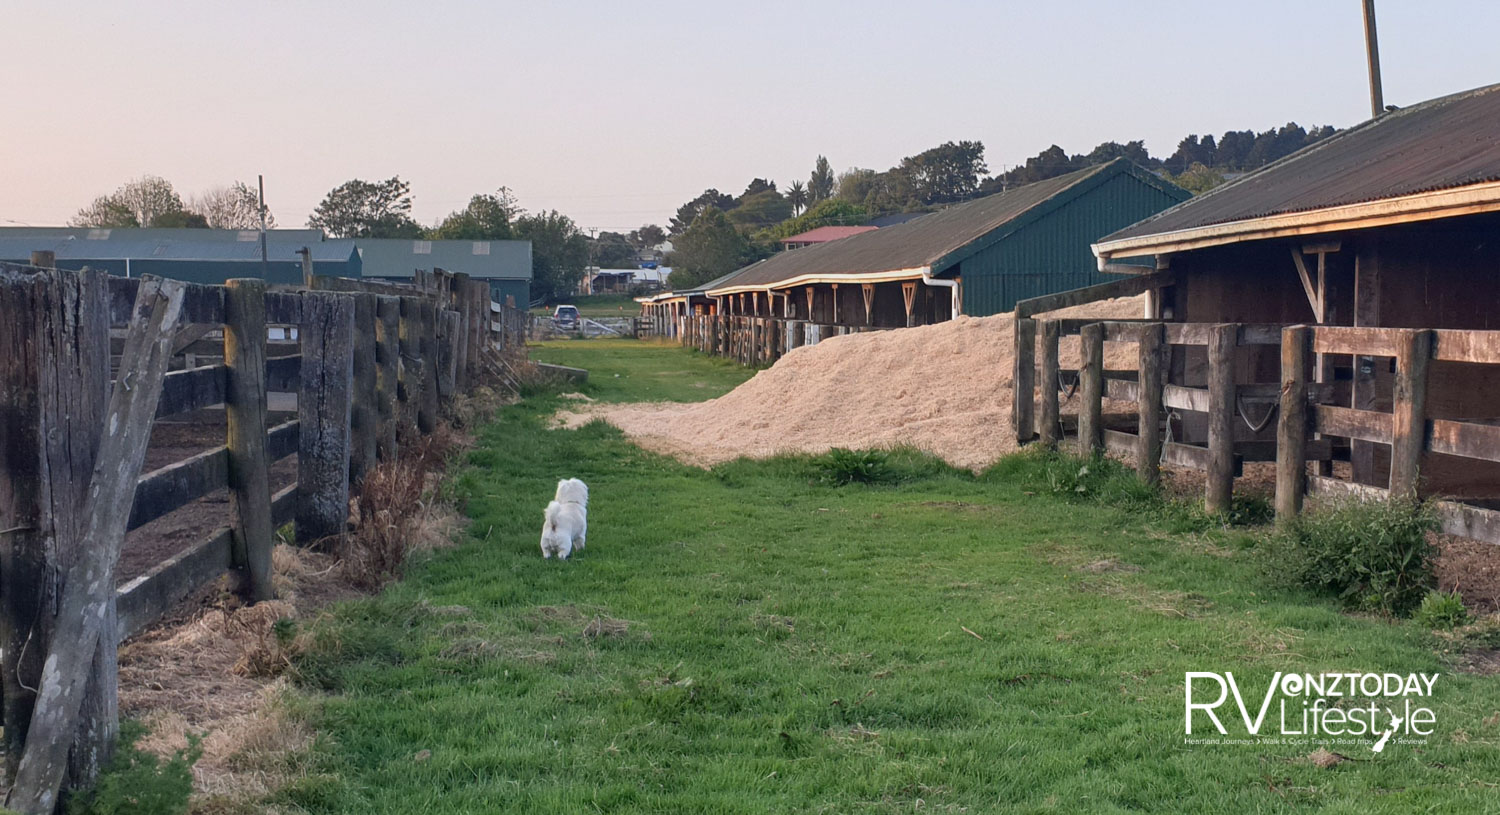 Looking for my rabbit mates at the Pukekohe A&P Showgrounds area - lots of motorhomes stay here overnight, I meet new friends there sometimes too